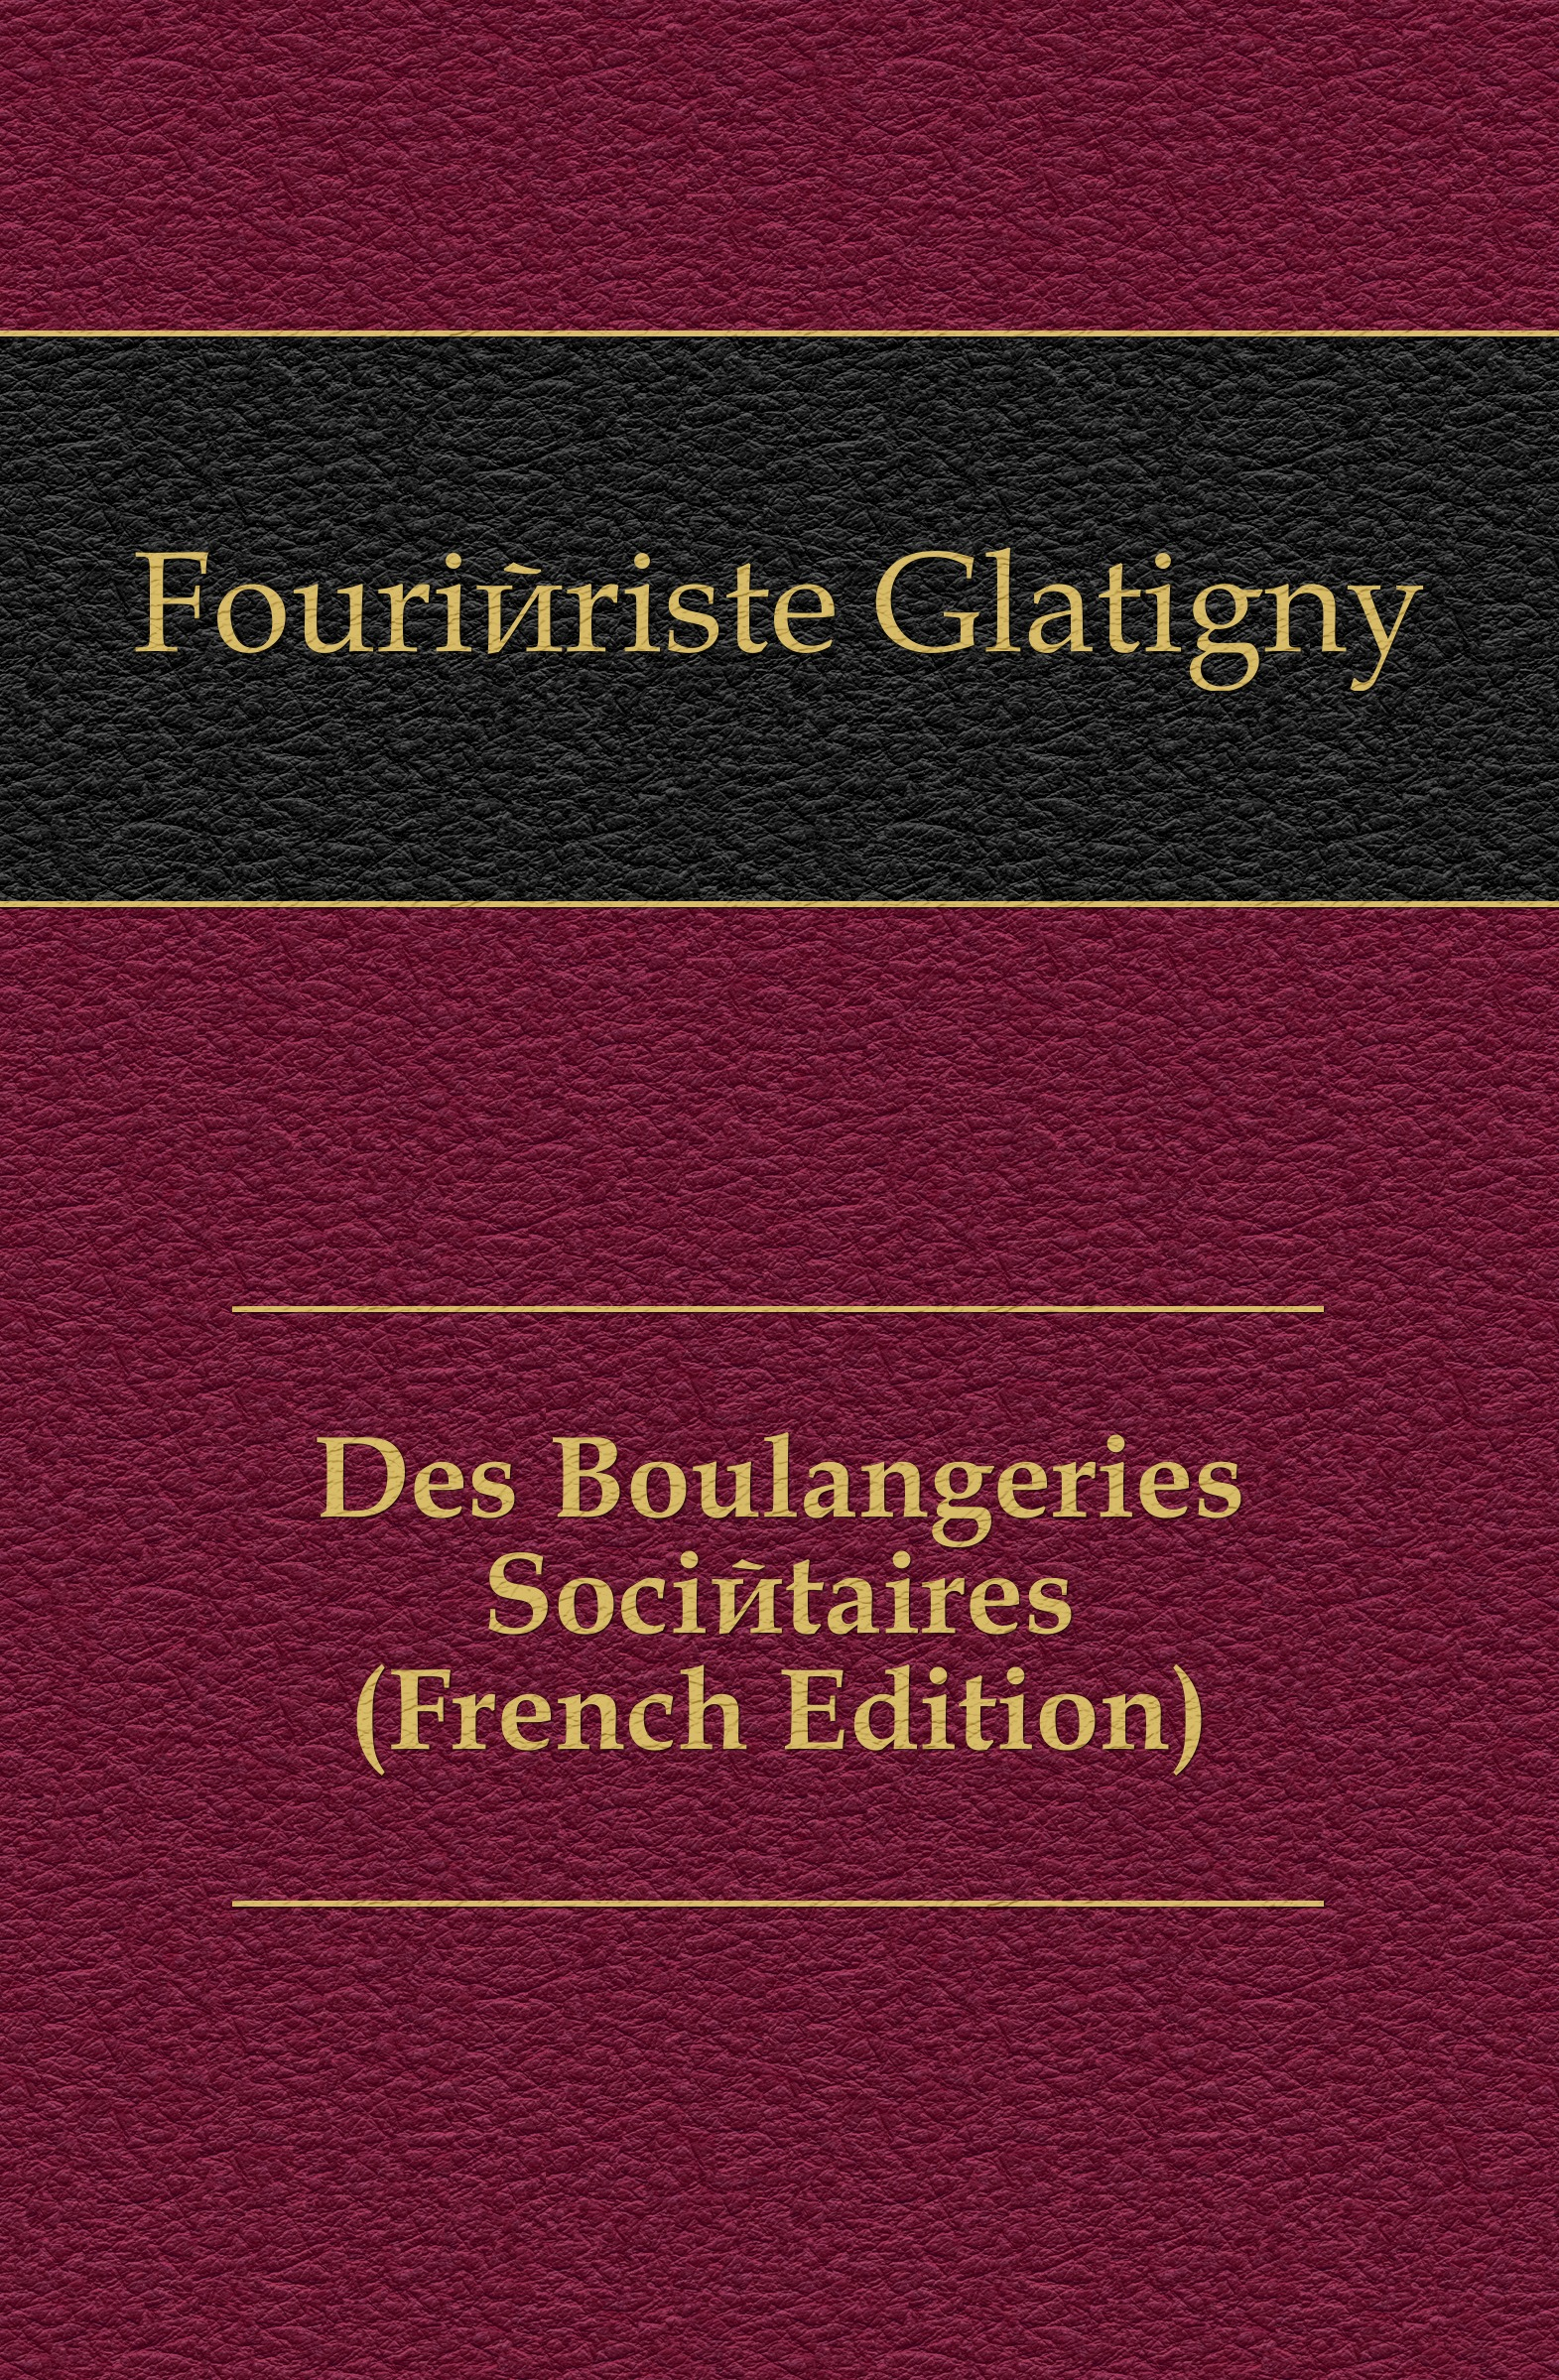 Des Boulangeries Societaires (French Edition)